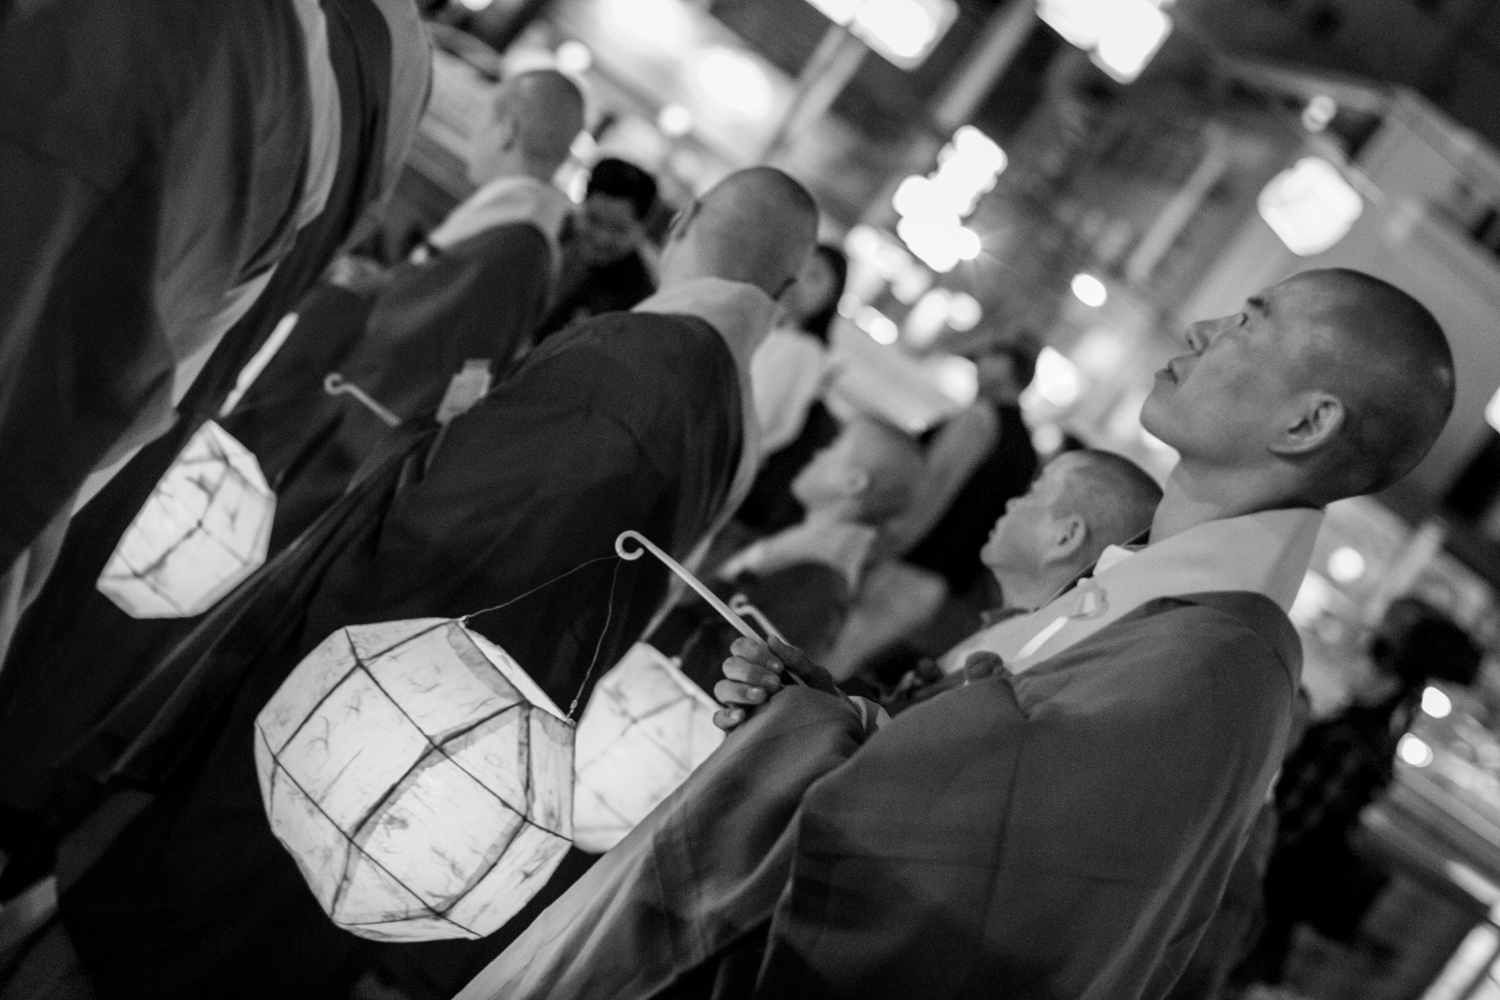 Monks lead the procession.